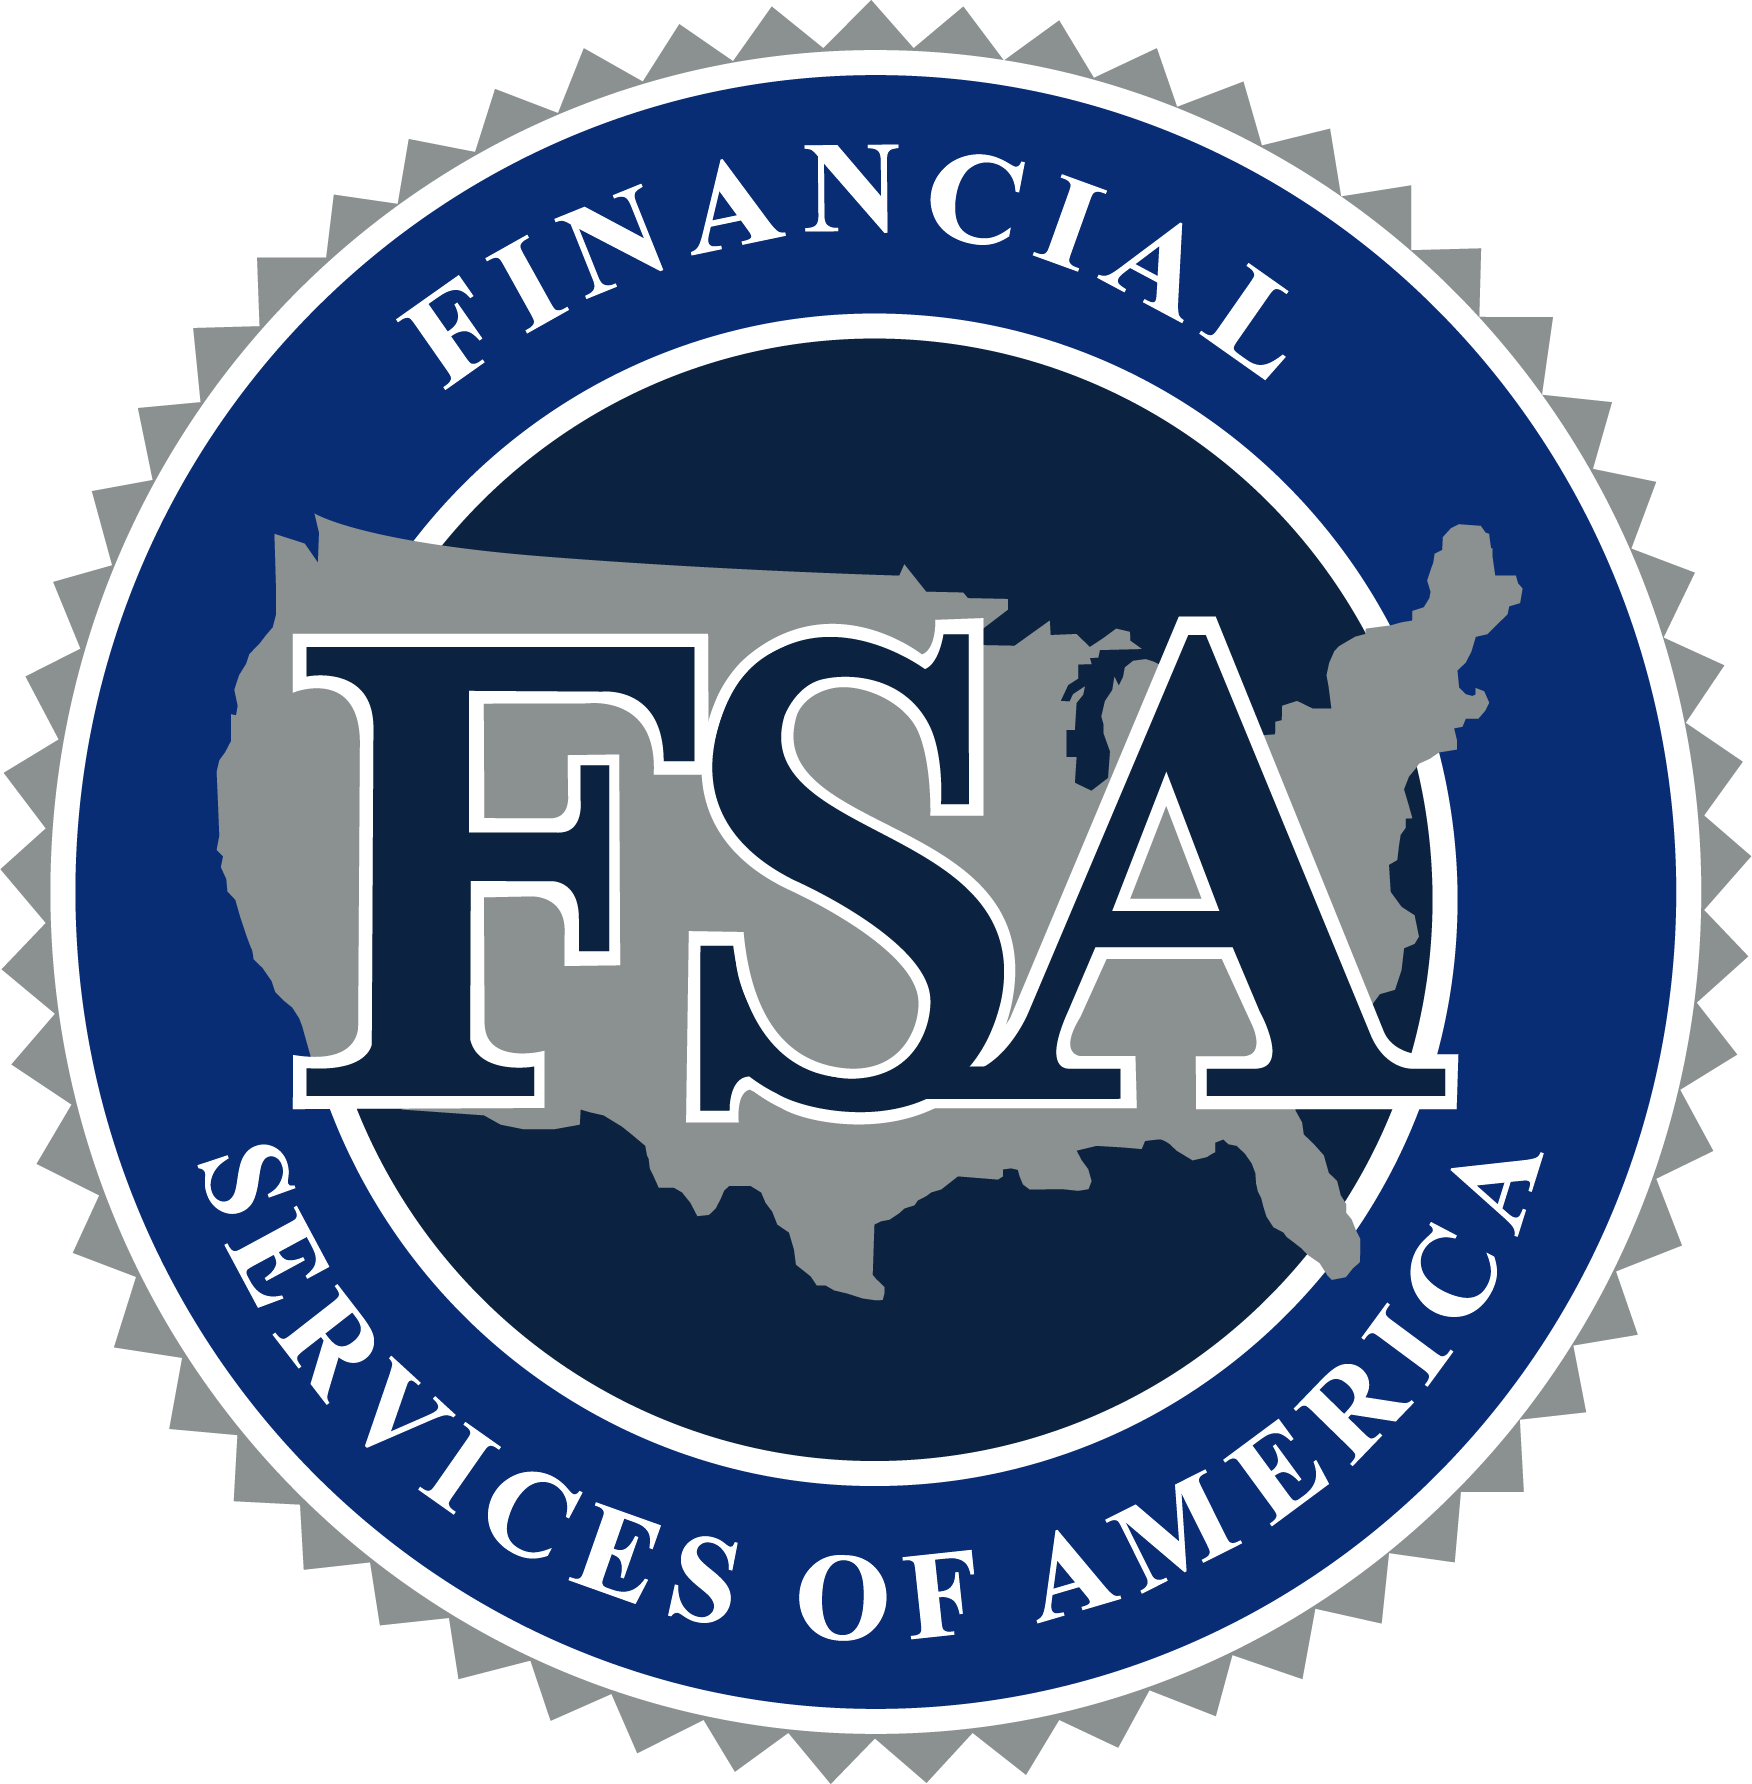 Financial Services of America logo